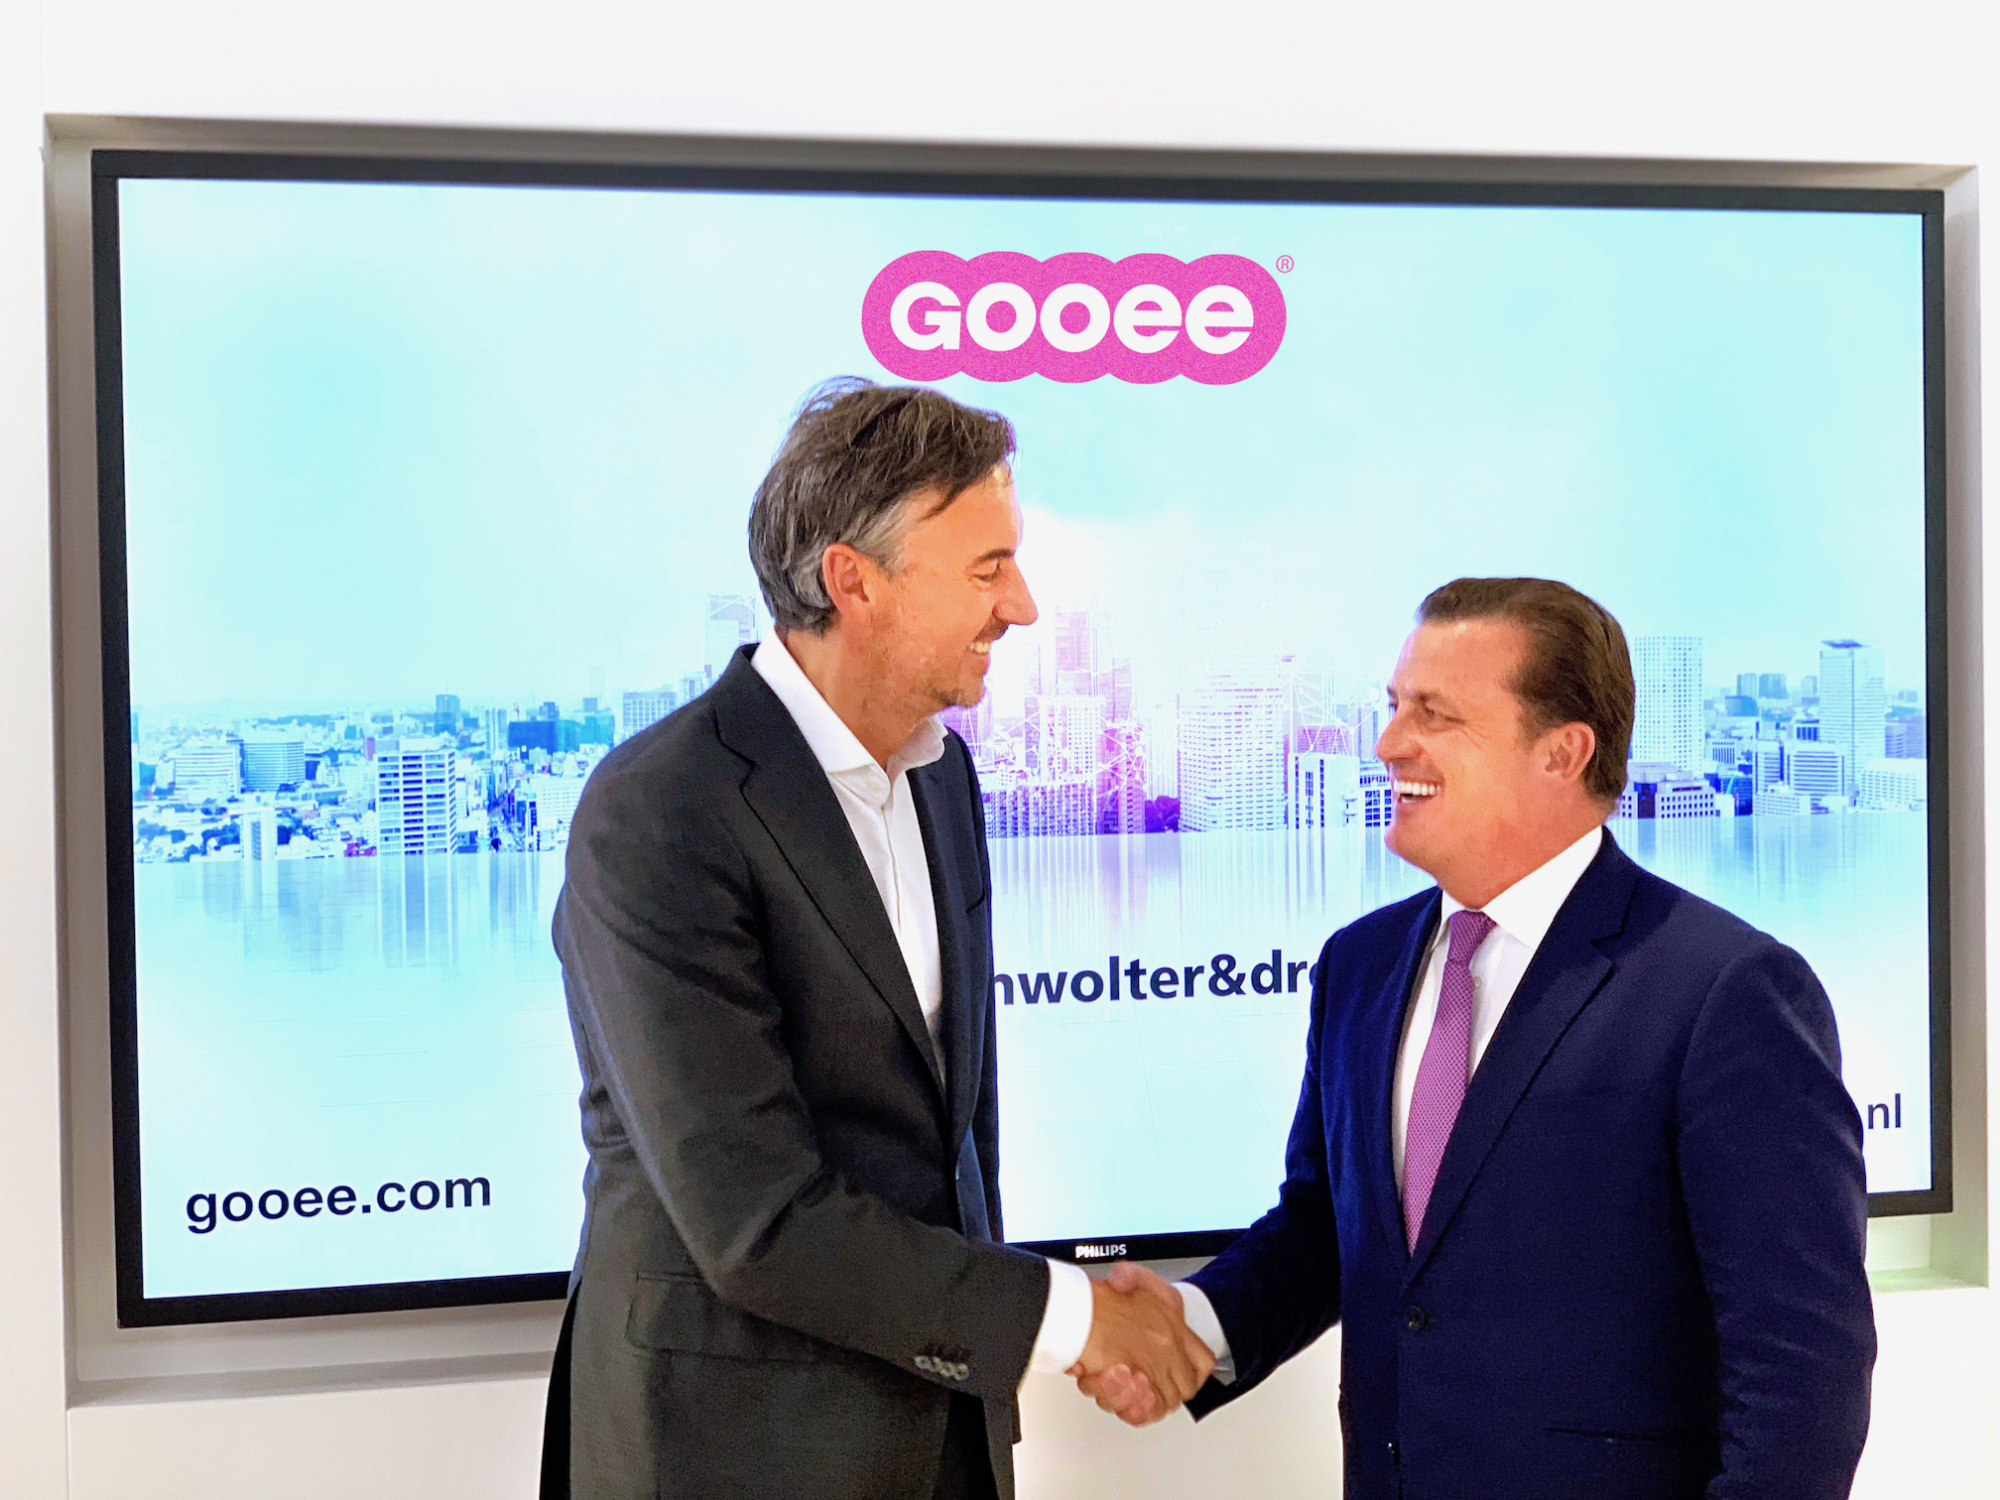 Bas Ambachtsheer, President at Croonwolter&dros and Andrew Johnson, Gooee CEO met at the Building Holland exhibition.